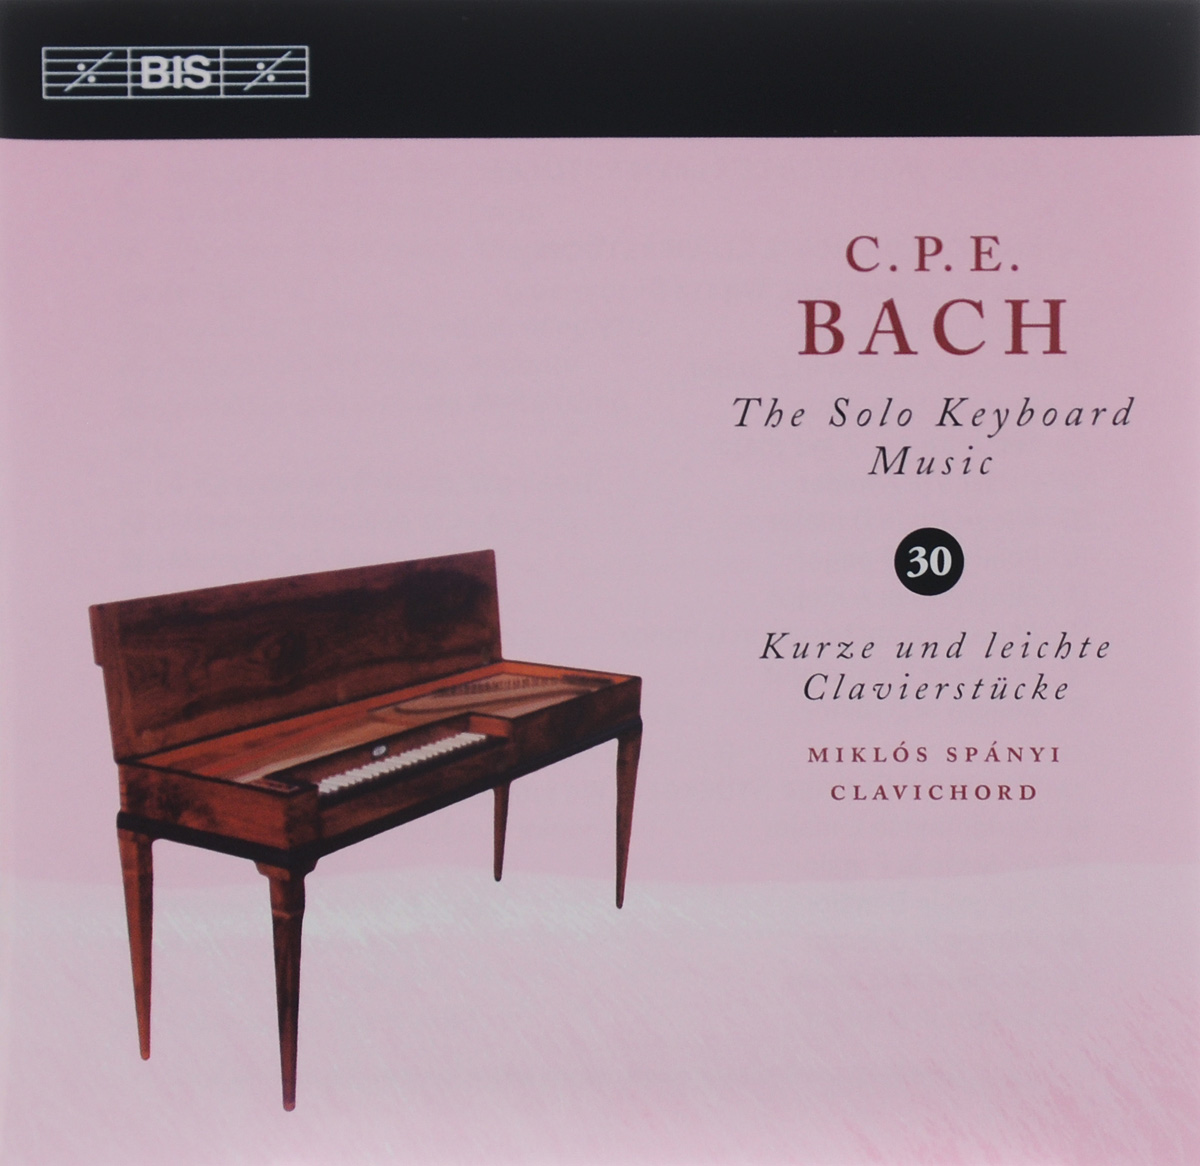 Миклос Спани Miklos Spanyi. C. P. E. Bach. The Solo Keyboard Music. Vol. 30 боб ван асперен das alte werk c p e bach prussian